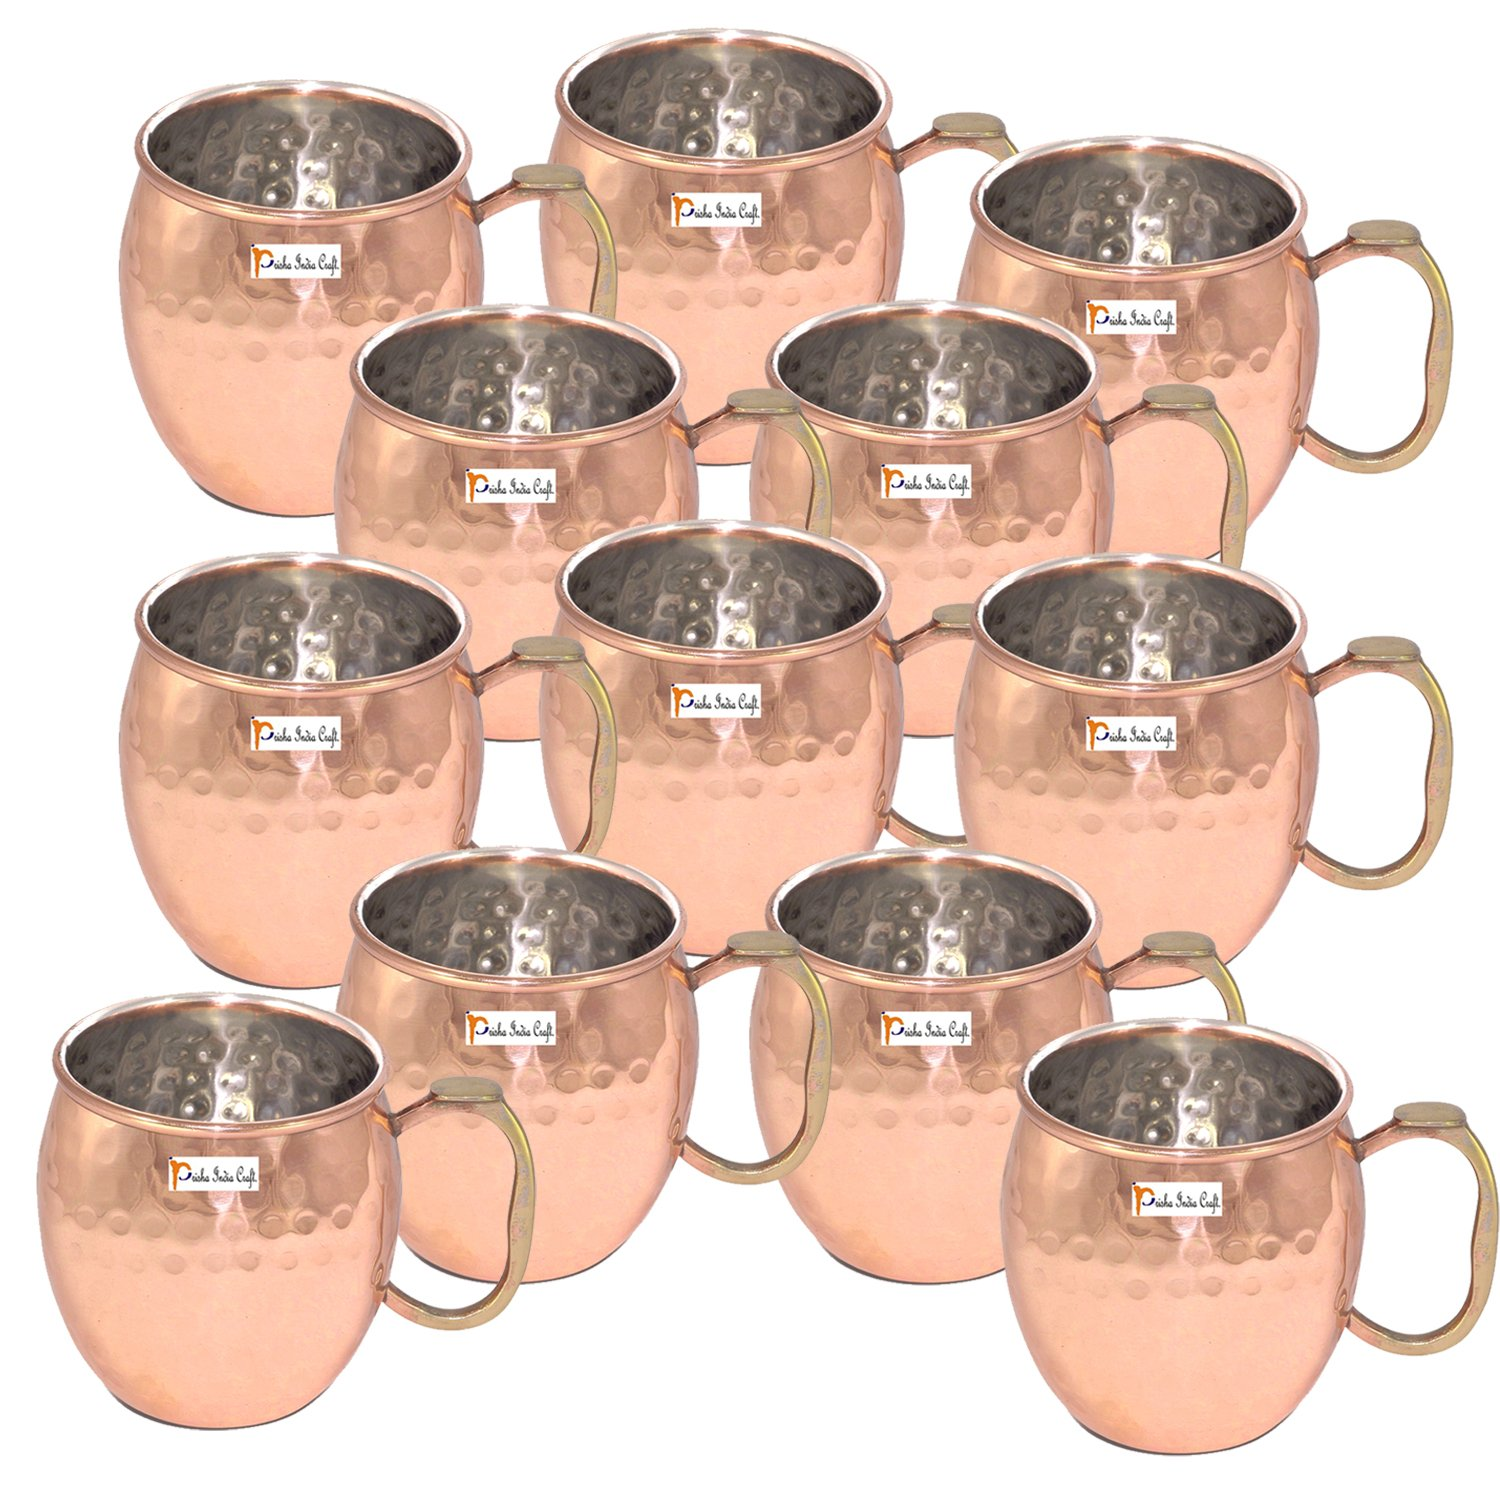 20-Ounce - Set of 12 - Prisha India Craft ® Copper Plating Stainless Steel Mule Mug Thumb Handle Premium Moscow Mule Copper Mug, Cocktail Cup, Copper Mugs, Cocktail Mugs – Christmas Gift Item